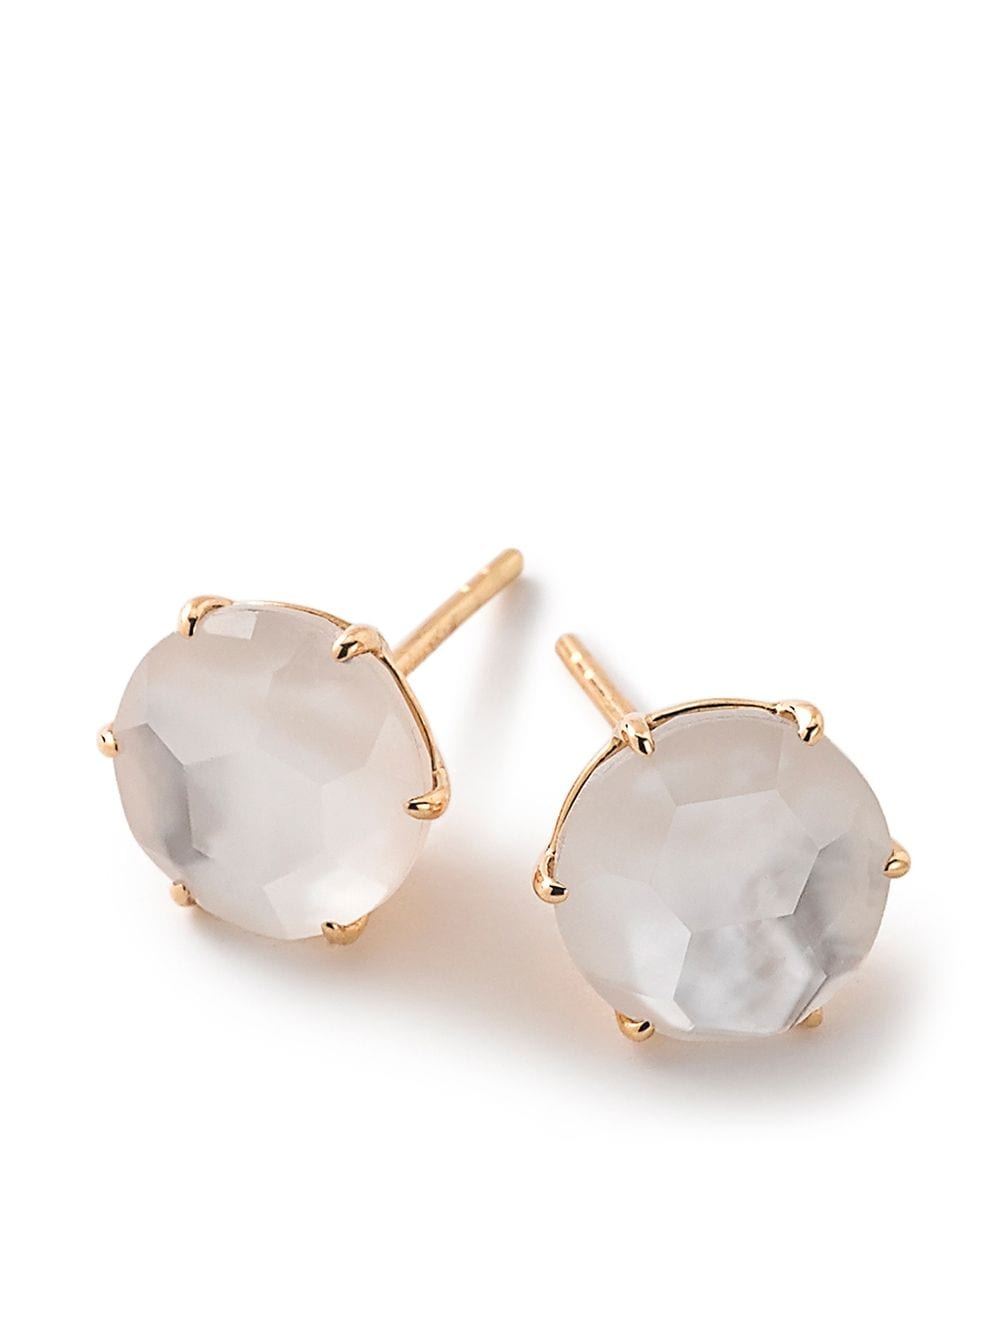 IPPOLITA 18kt yellow gold medium Rock Candy mother-of-pearl and clear quartz studs von IPPOLITA